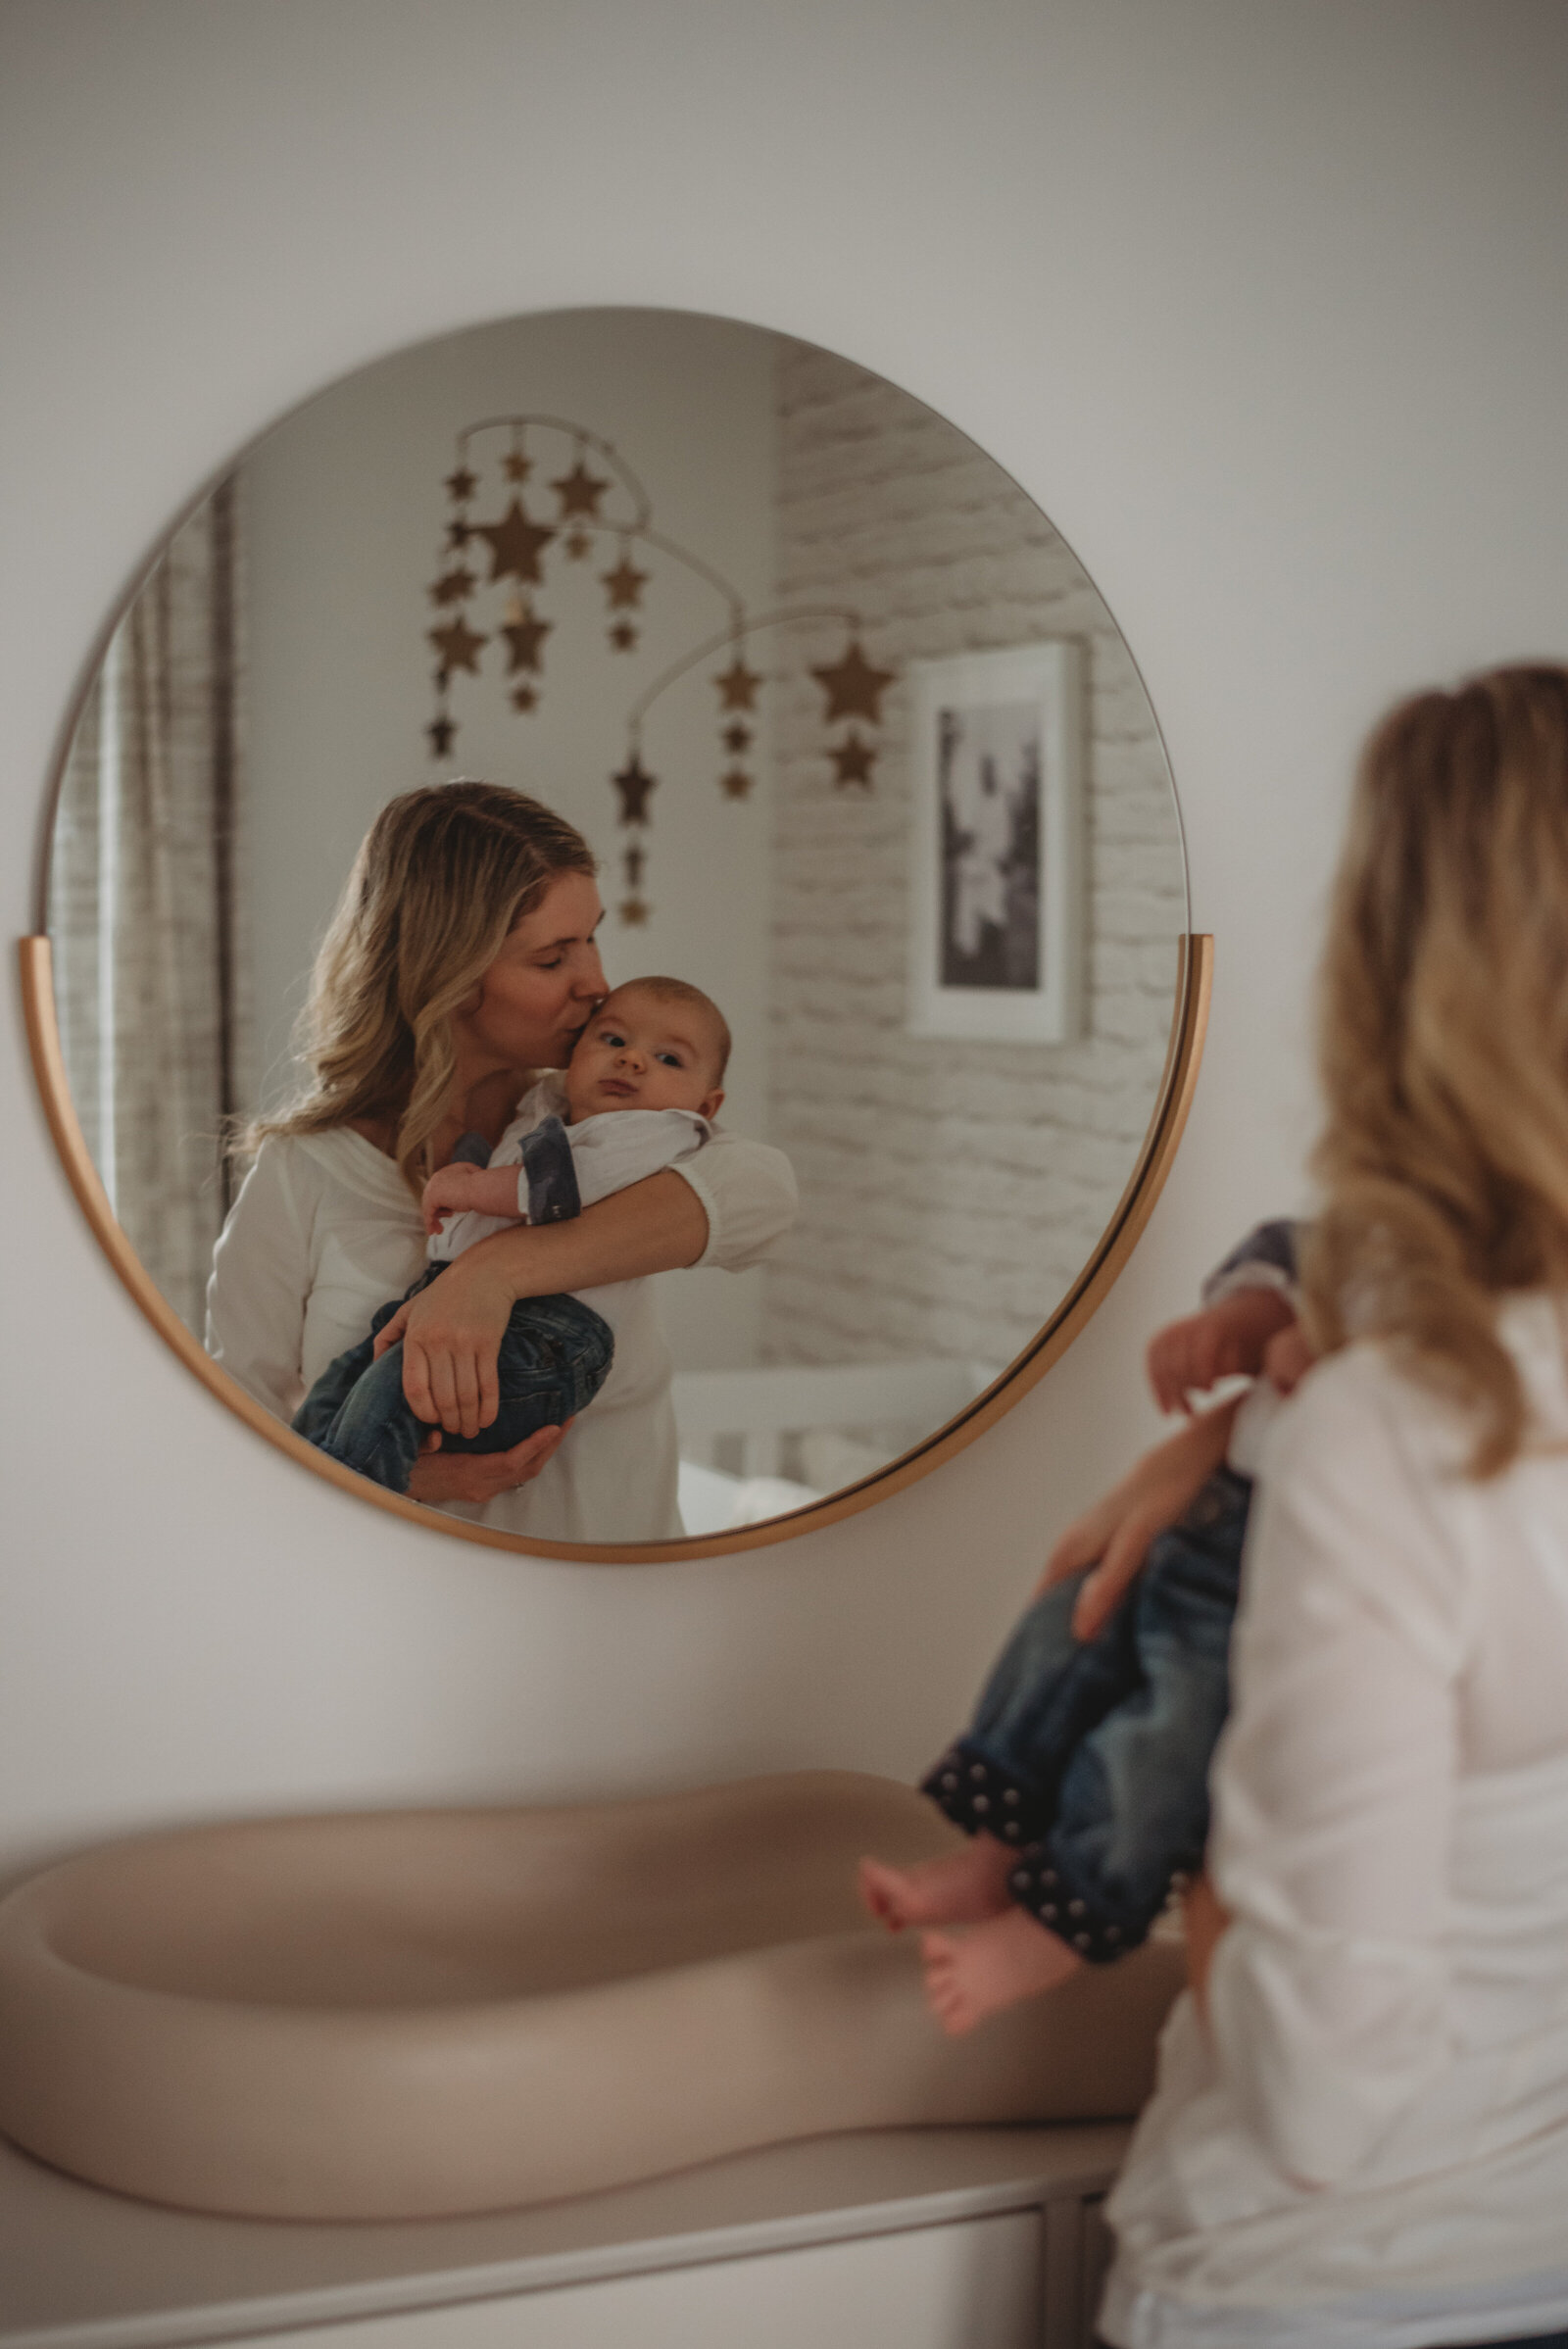 Mother holding her baby son in front of a mirror